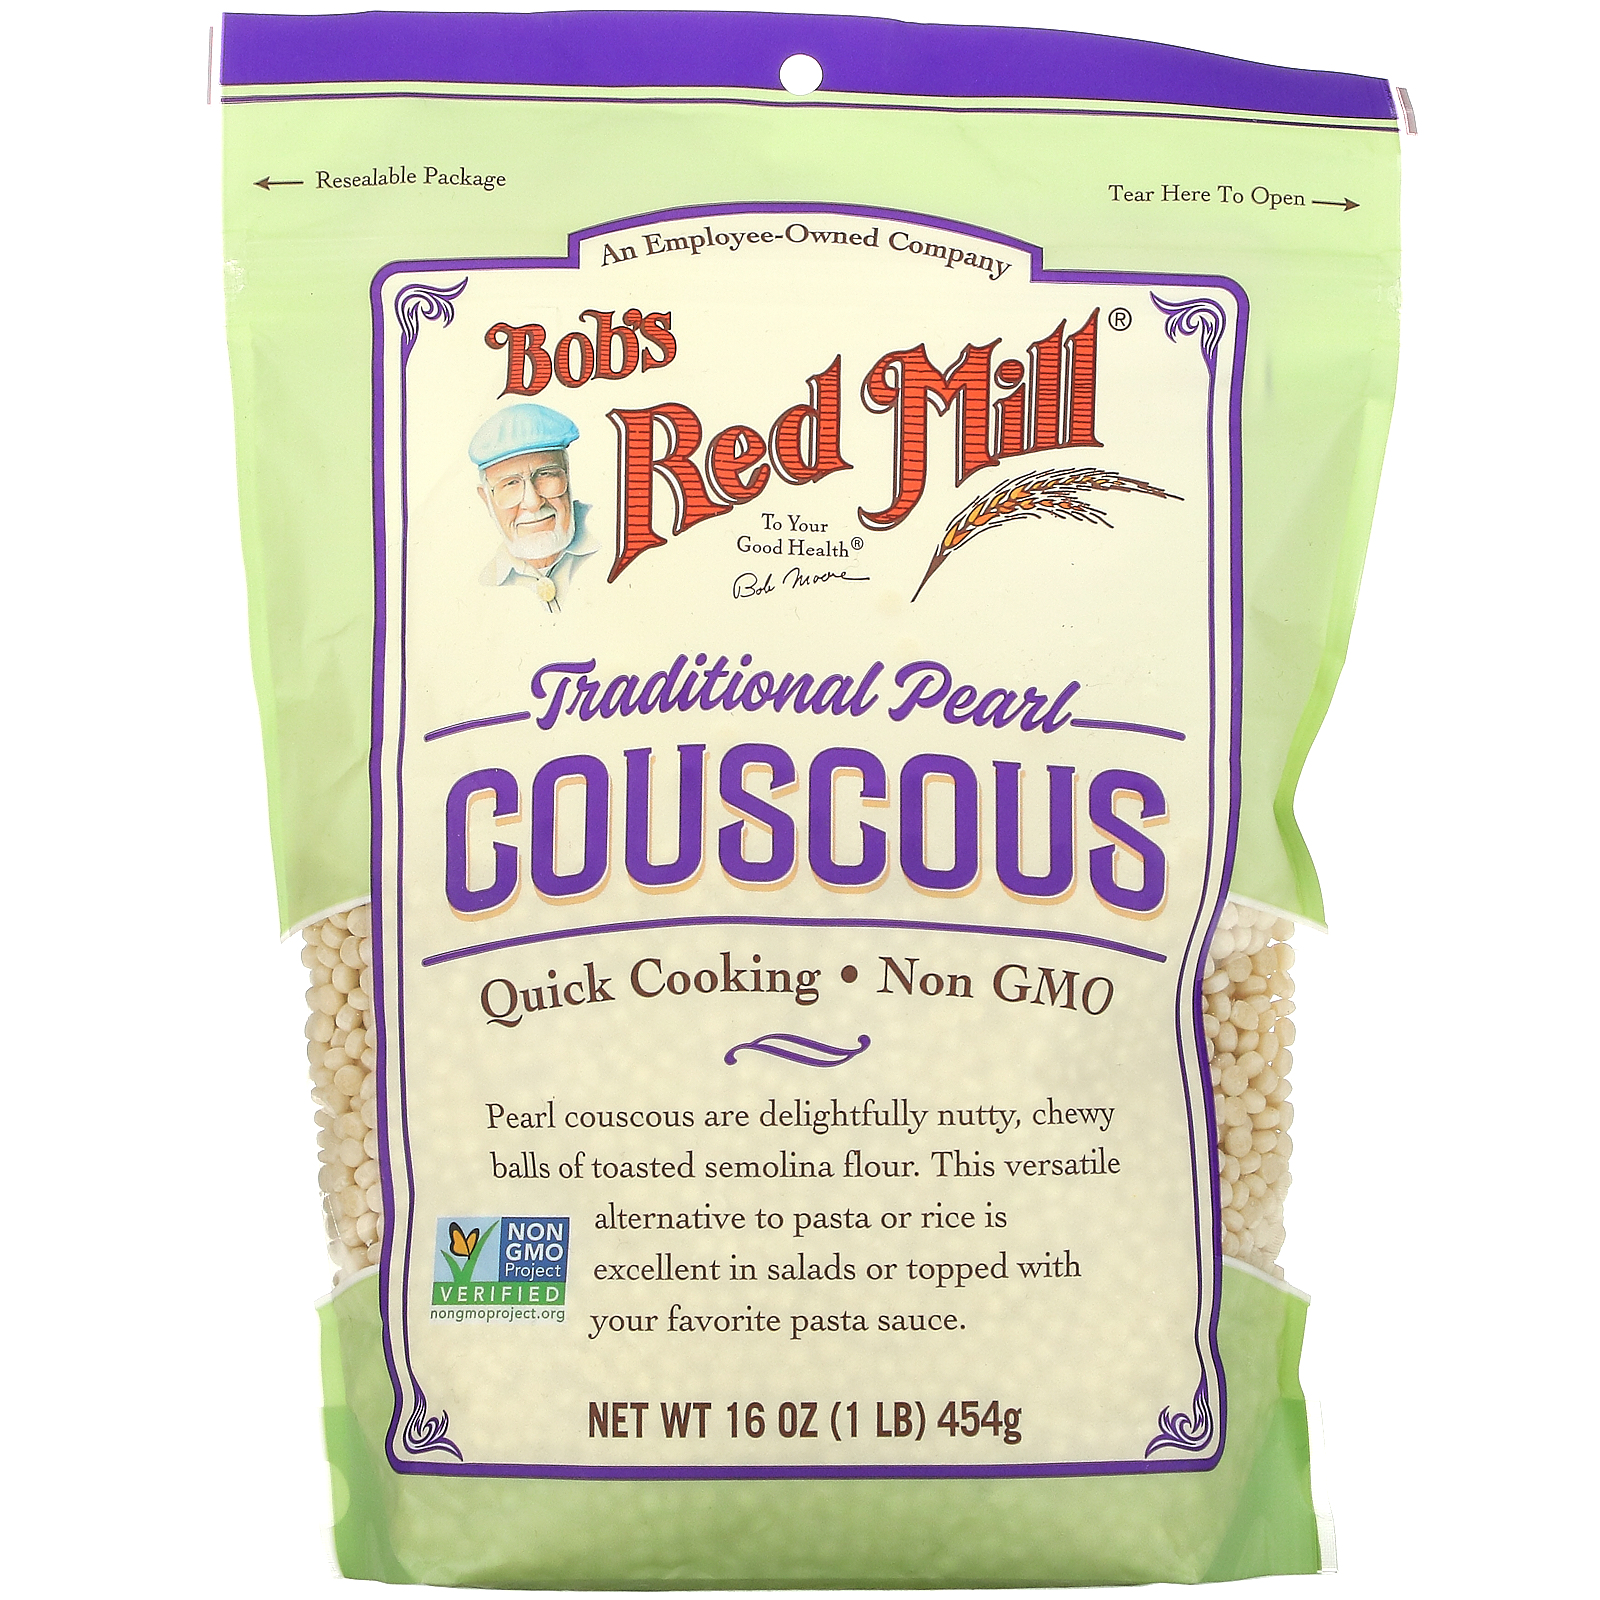 Bob's Red Mill, Traditional Pearl Couscous, 16 oz (454 g)